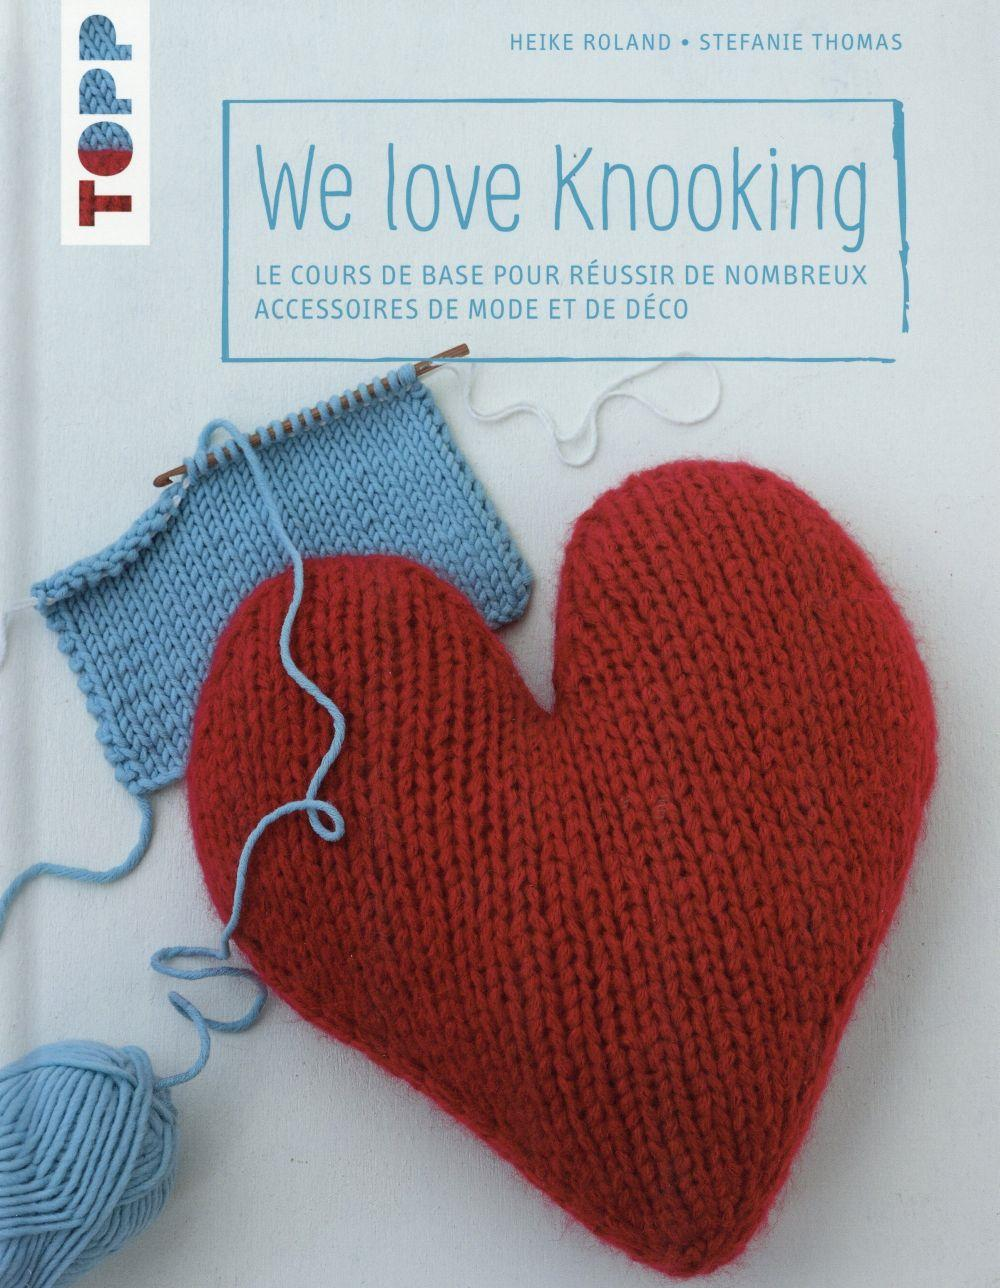 We love knooking  - Heike Roland  - Stefanie Thomas